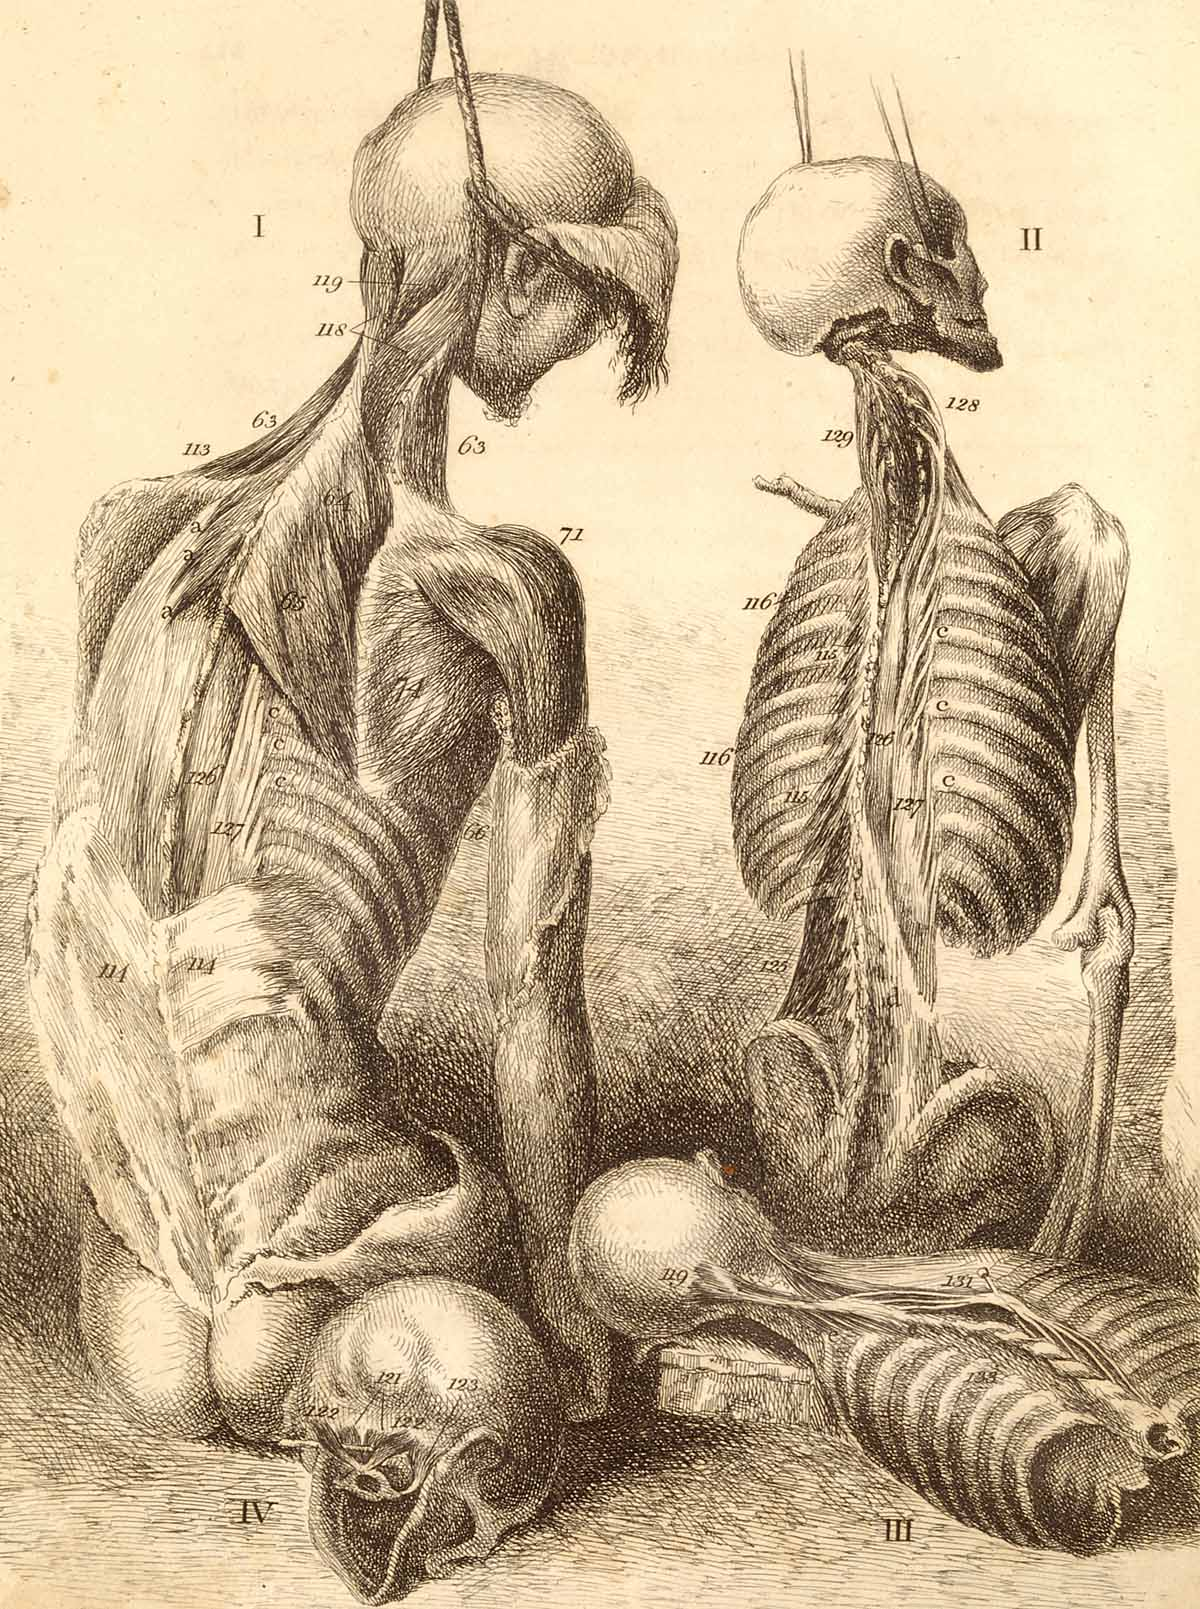 Dream Anatomy: Gallery: John Bell: Engravings of the bones, muscles ...